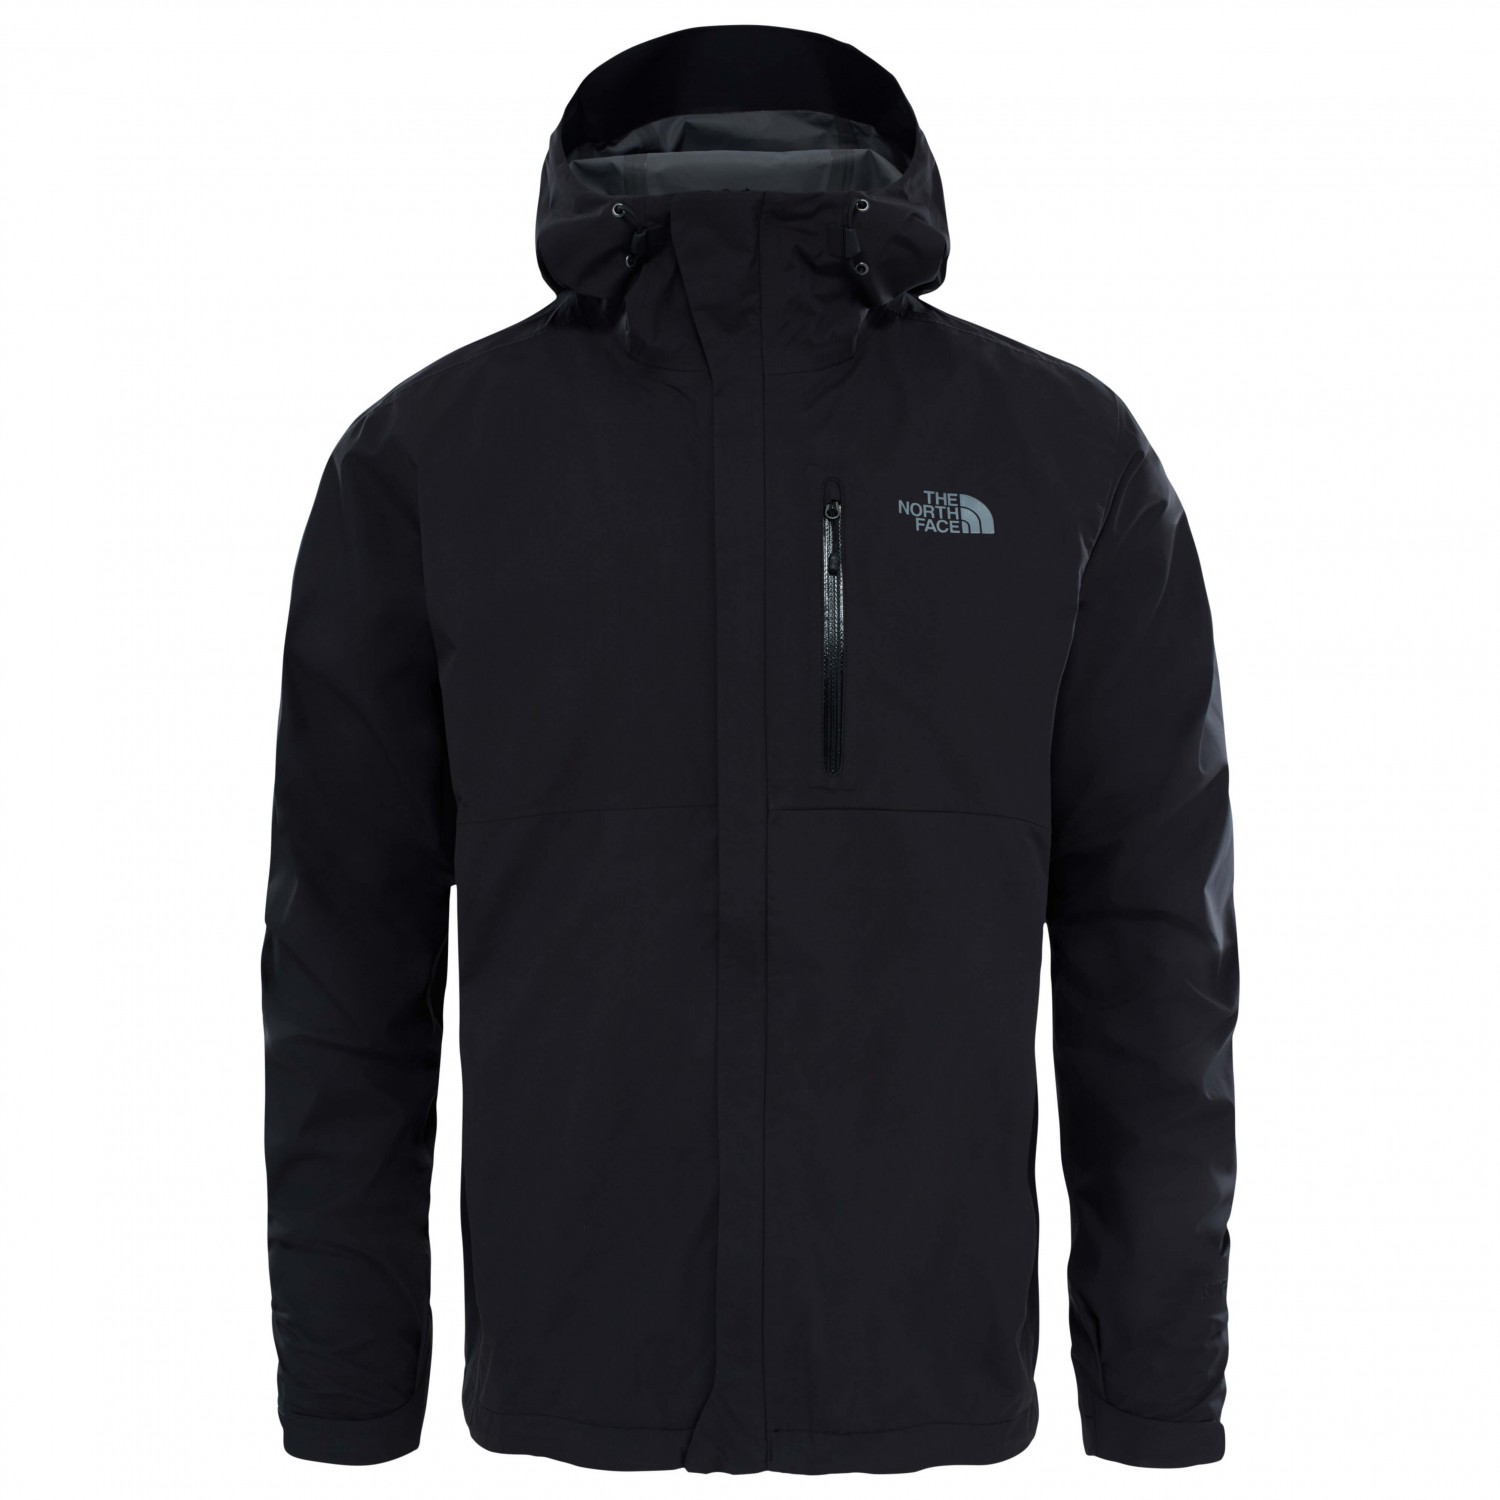 low priced 25d1f 1b619 The North Face - Dryzzle Jacket - Waterproof jacket ...